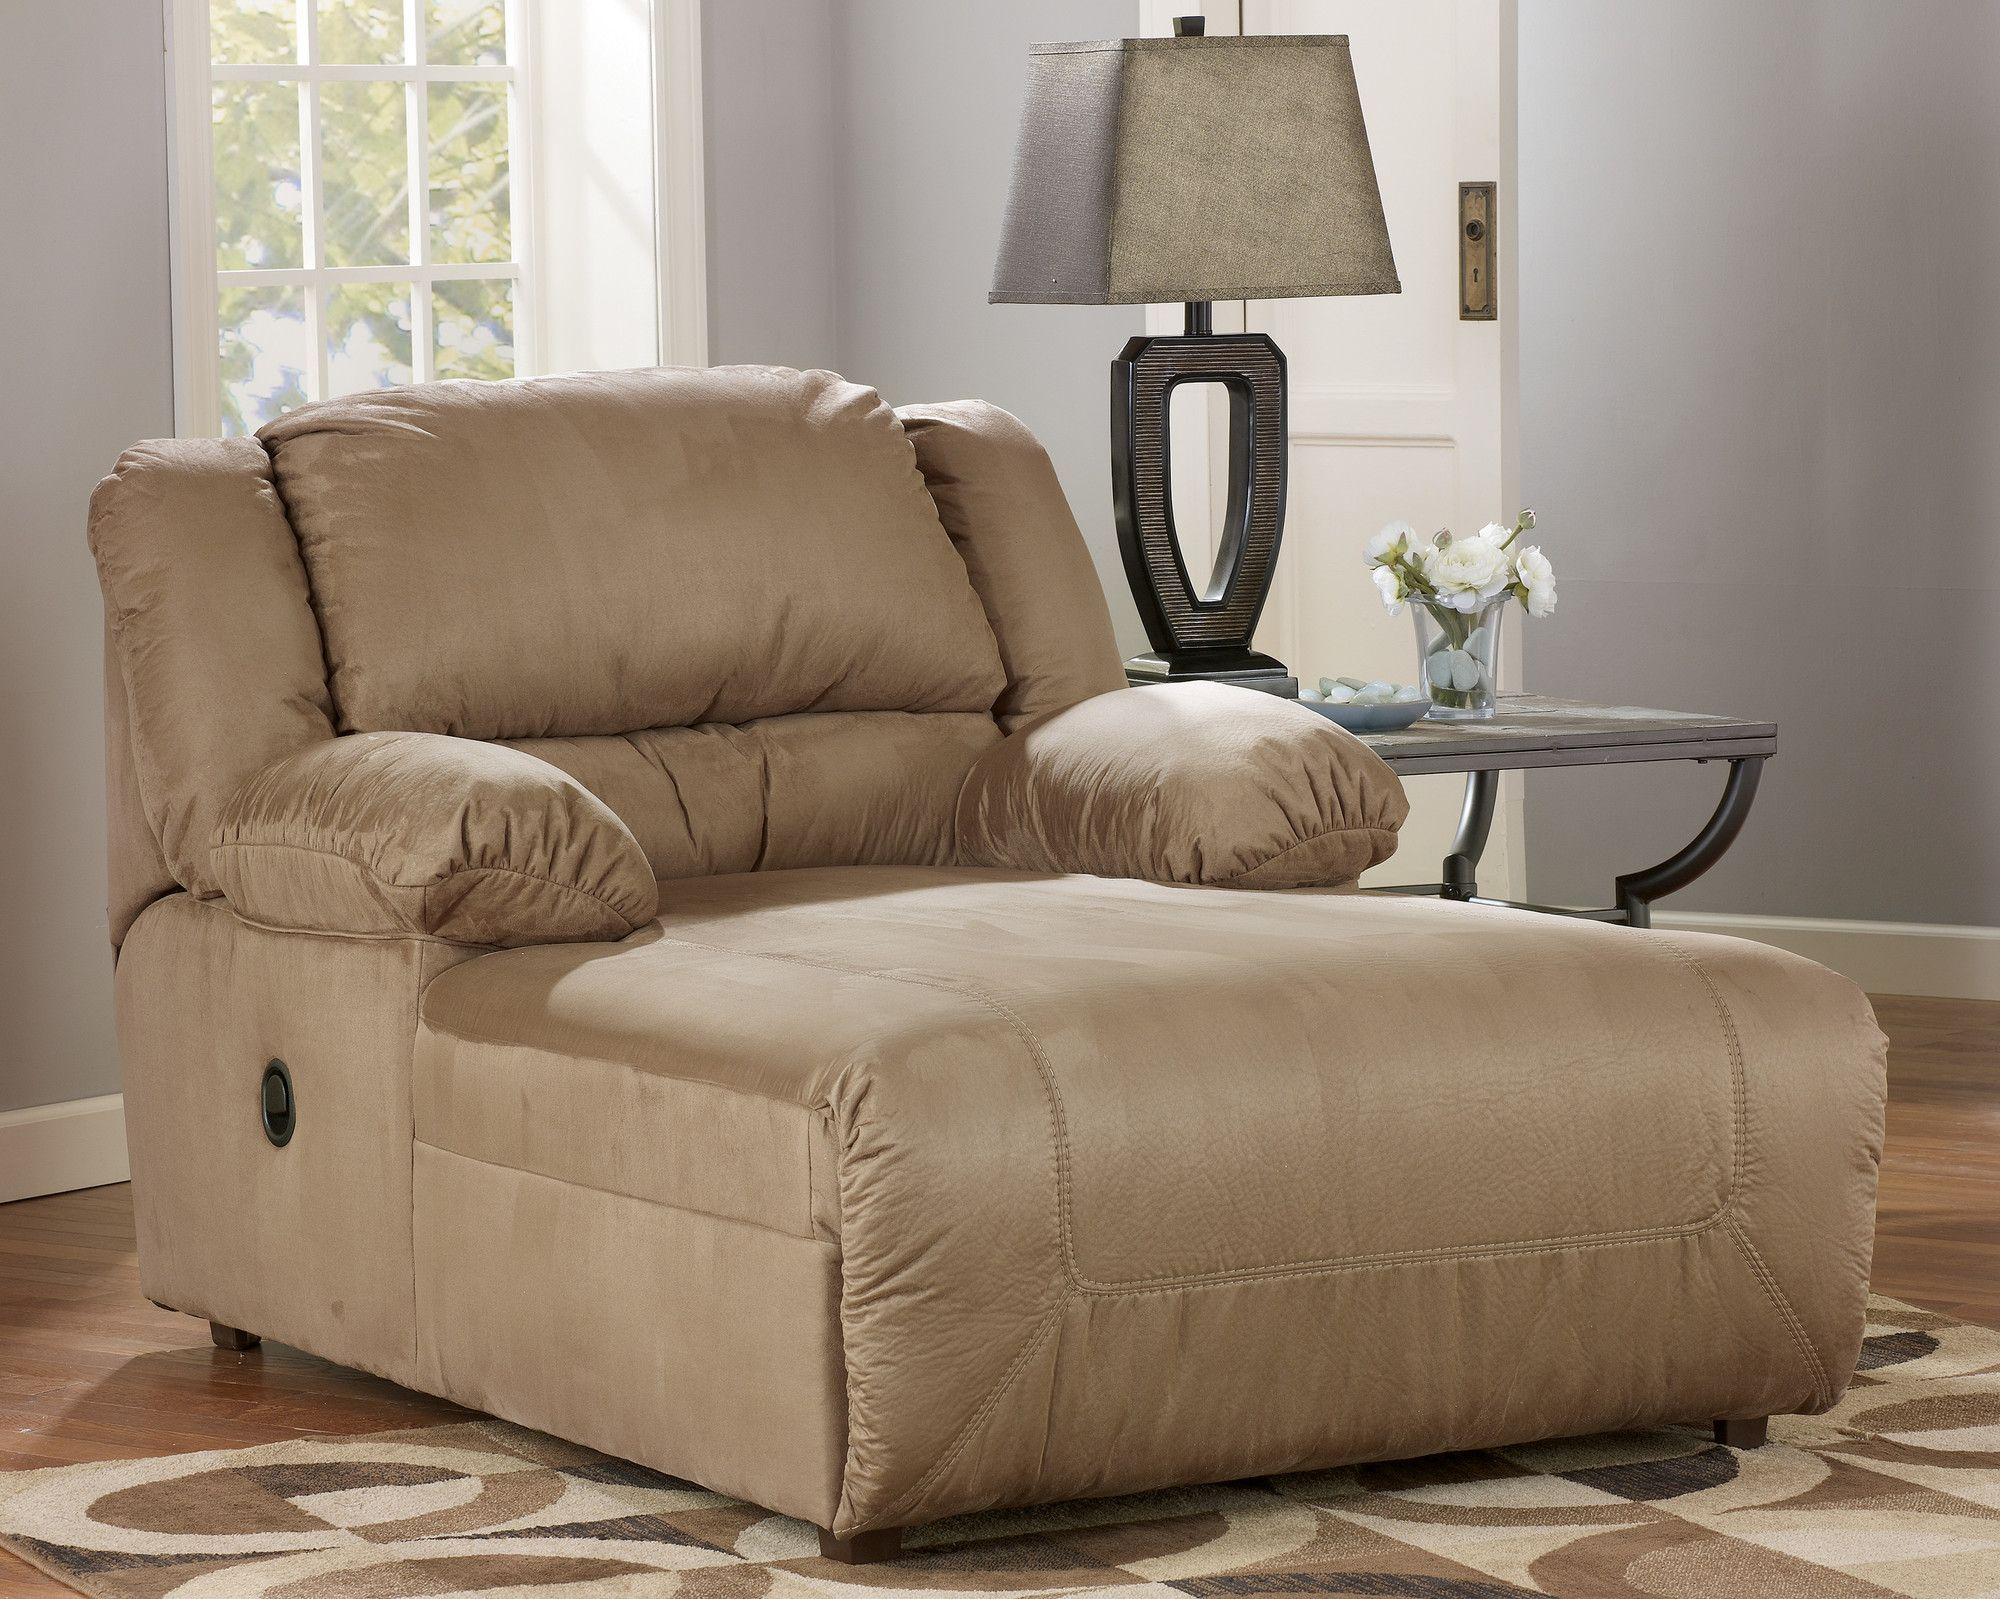 Newton Chaise Lounge Manly Living Room Living Room Chairs